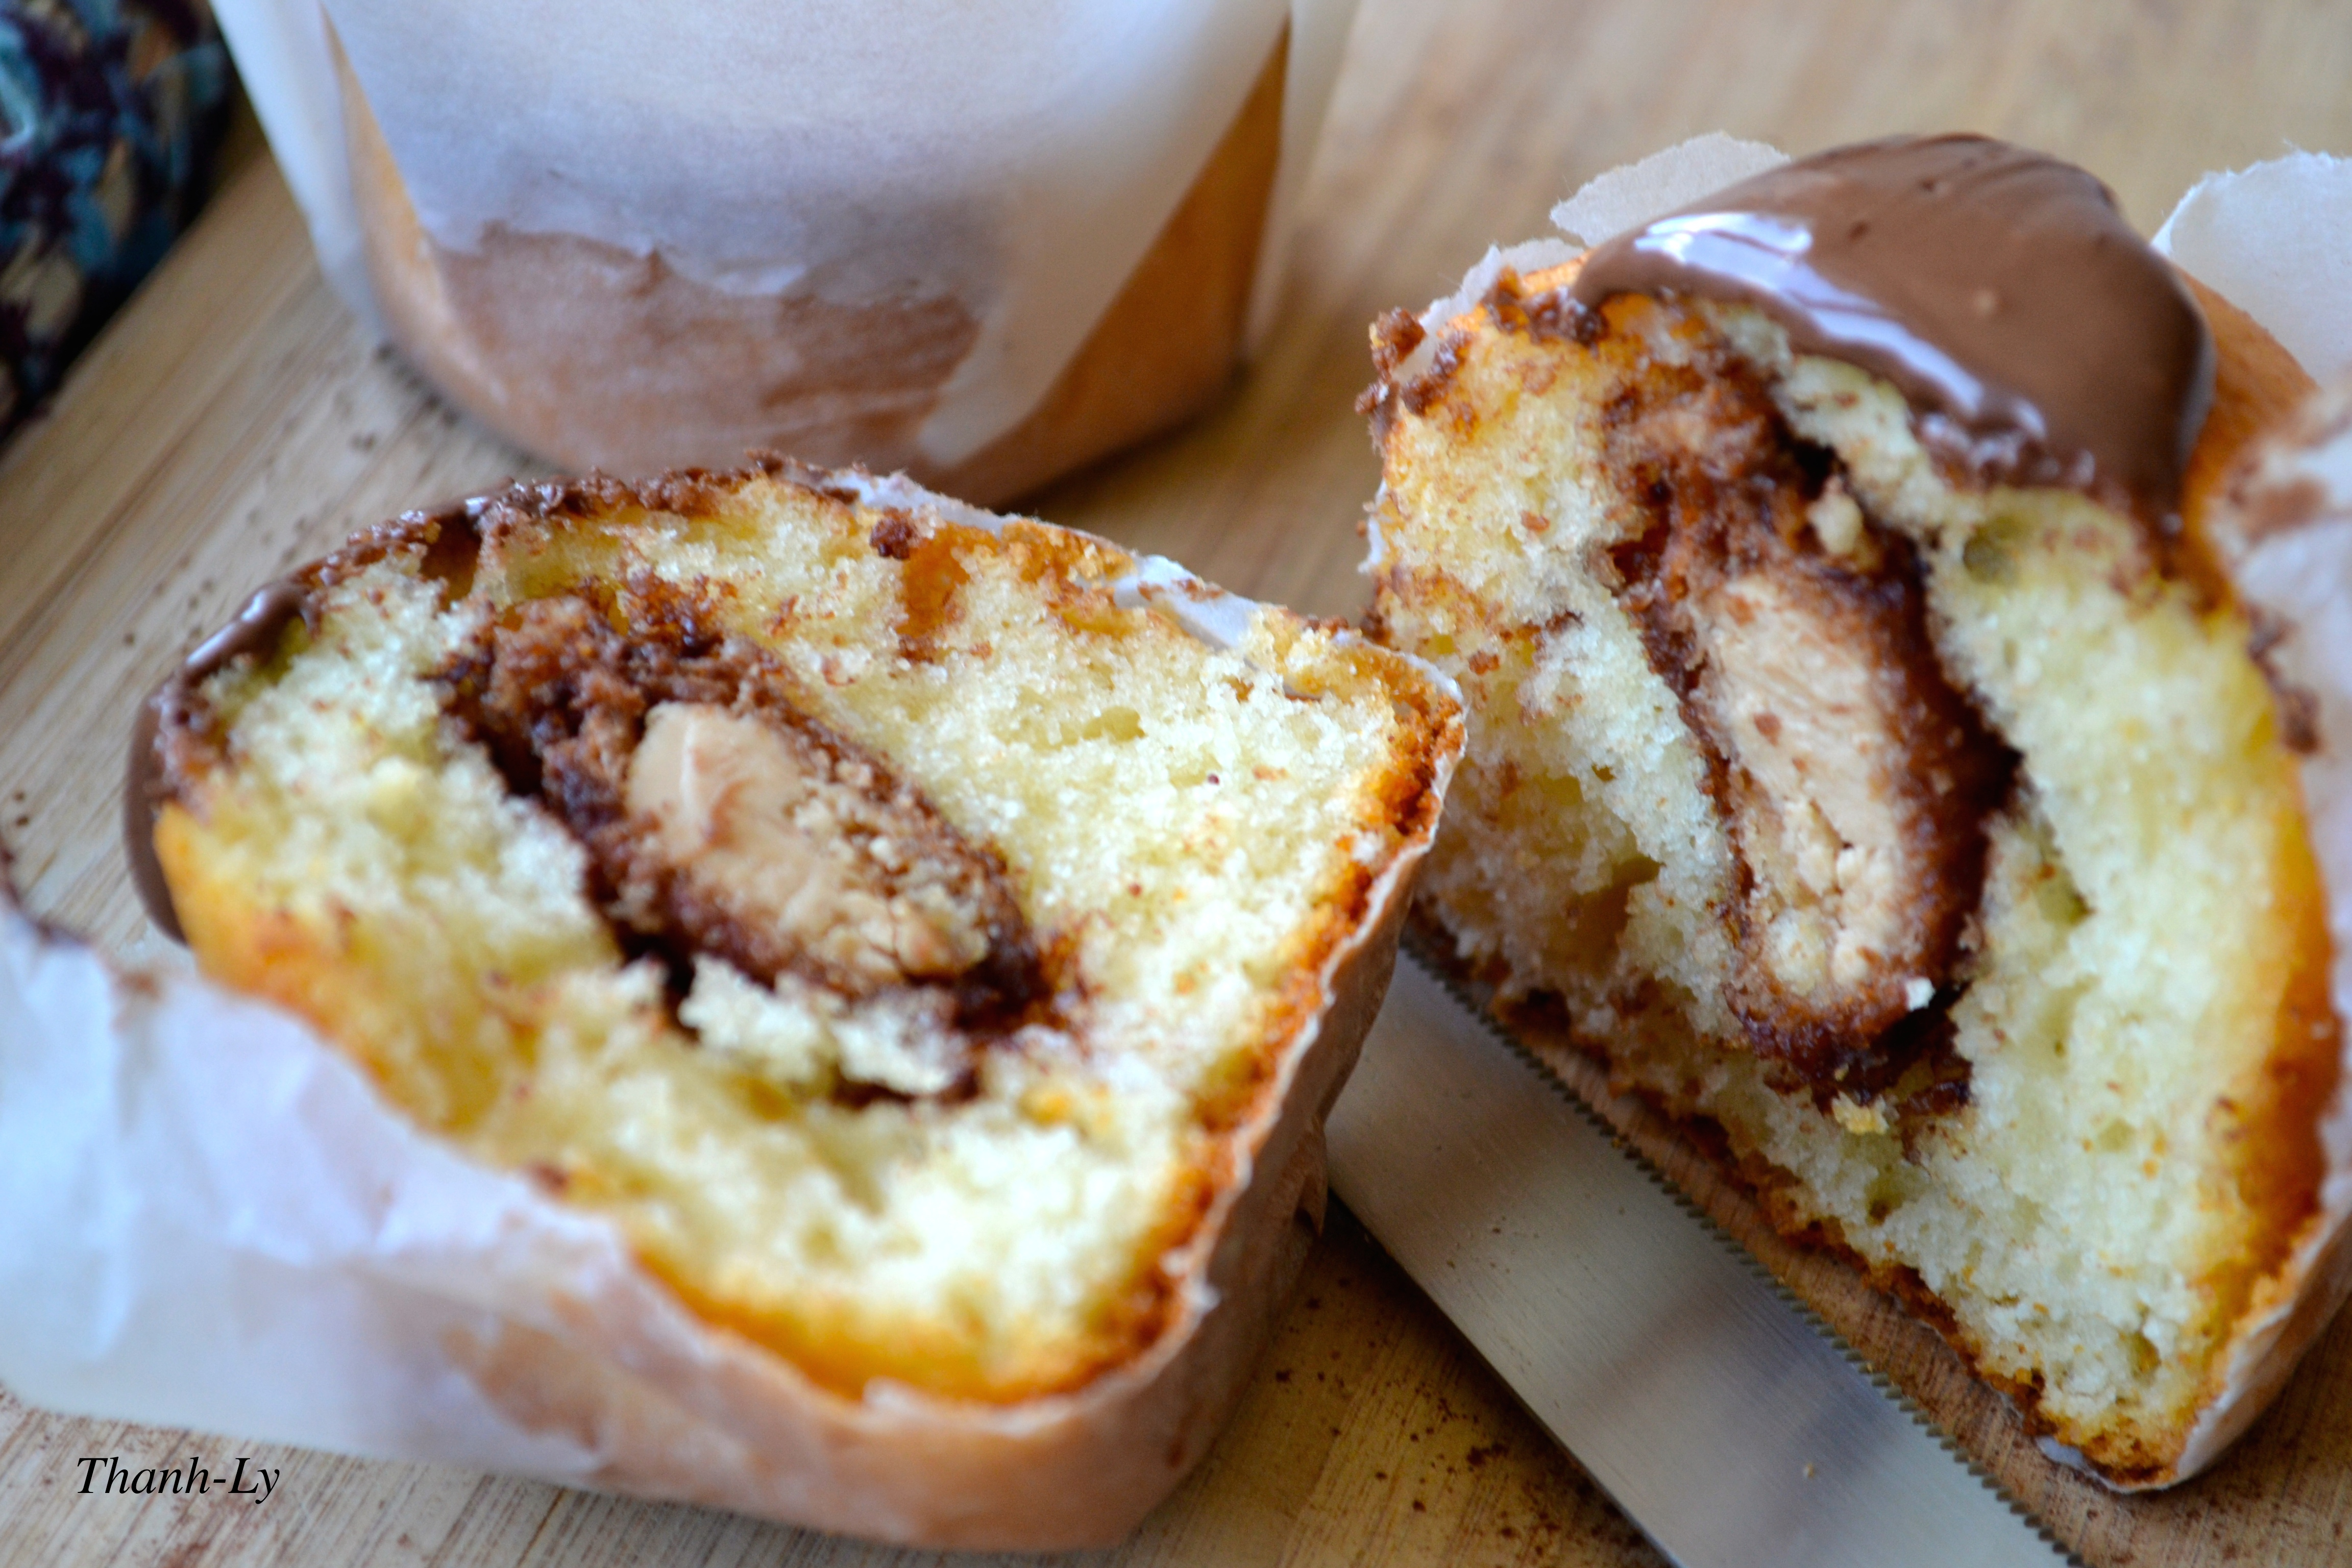 Muffins Kinder Country Muffins Au Yaourt Et Coeur De Kinder Bueno Thanh Ly Cuisine